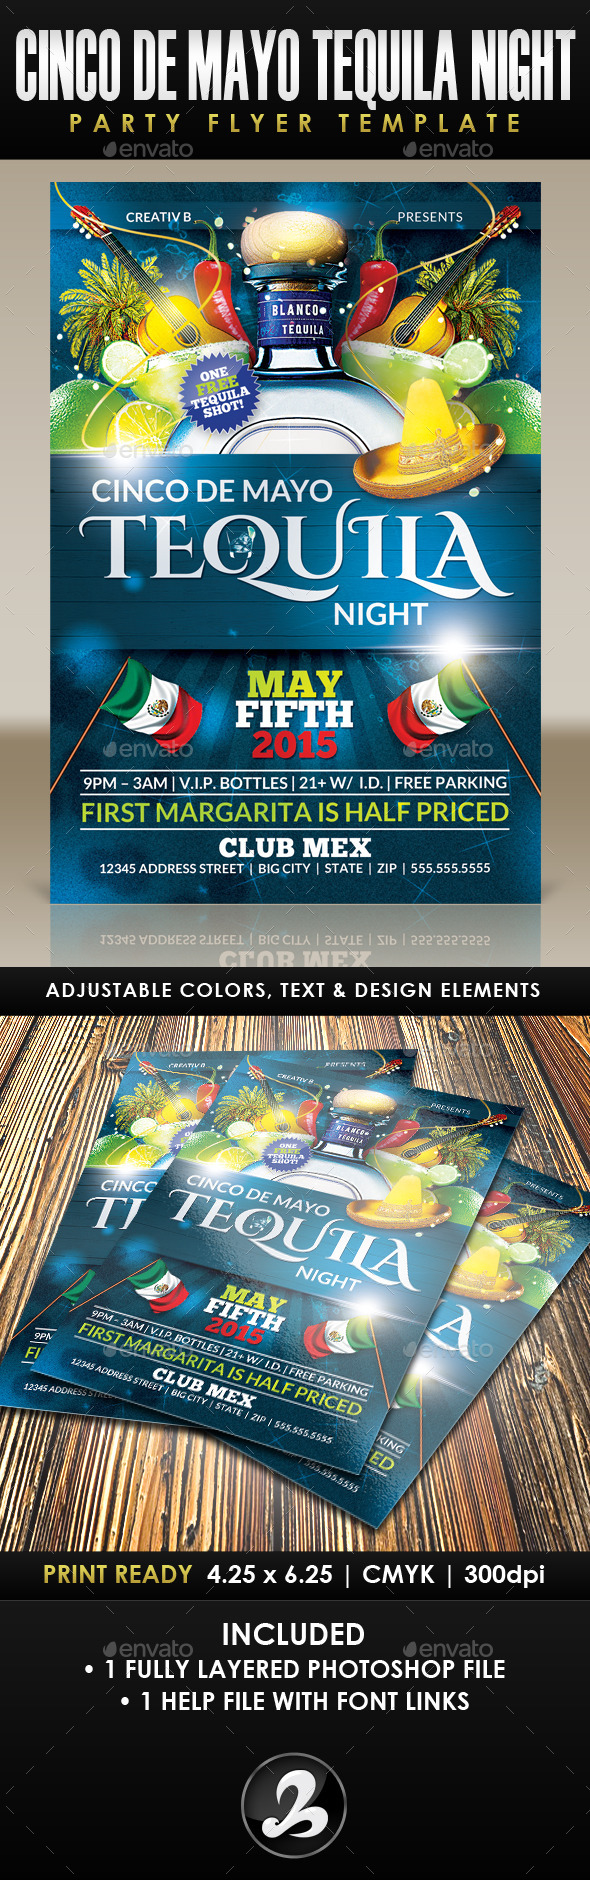 GraphicRiver Cinco De Mayo Tequila Night Party Flyer Template 11210270